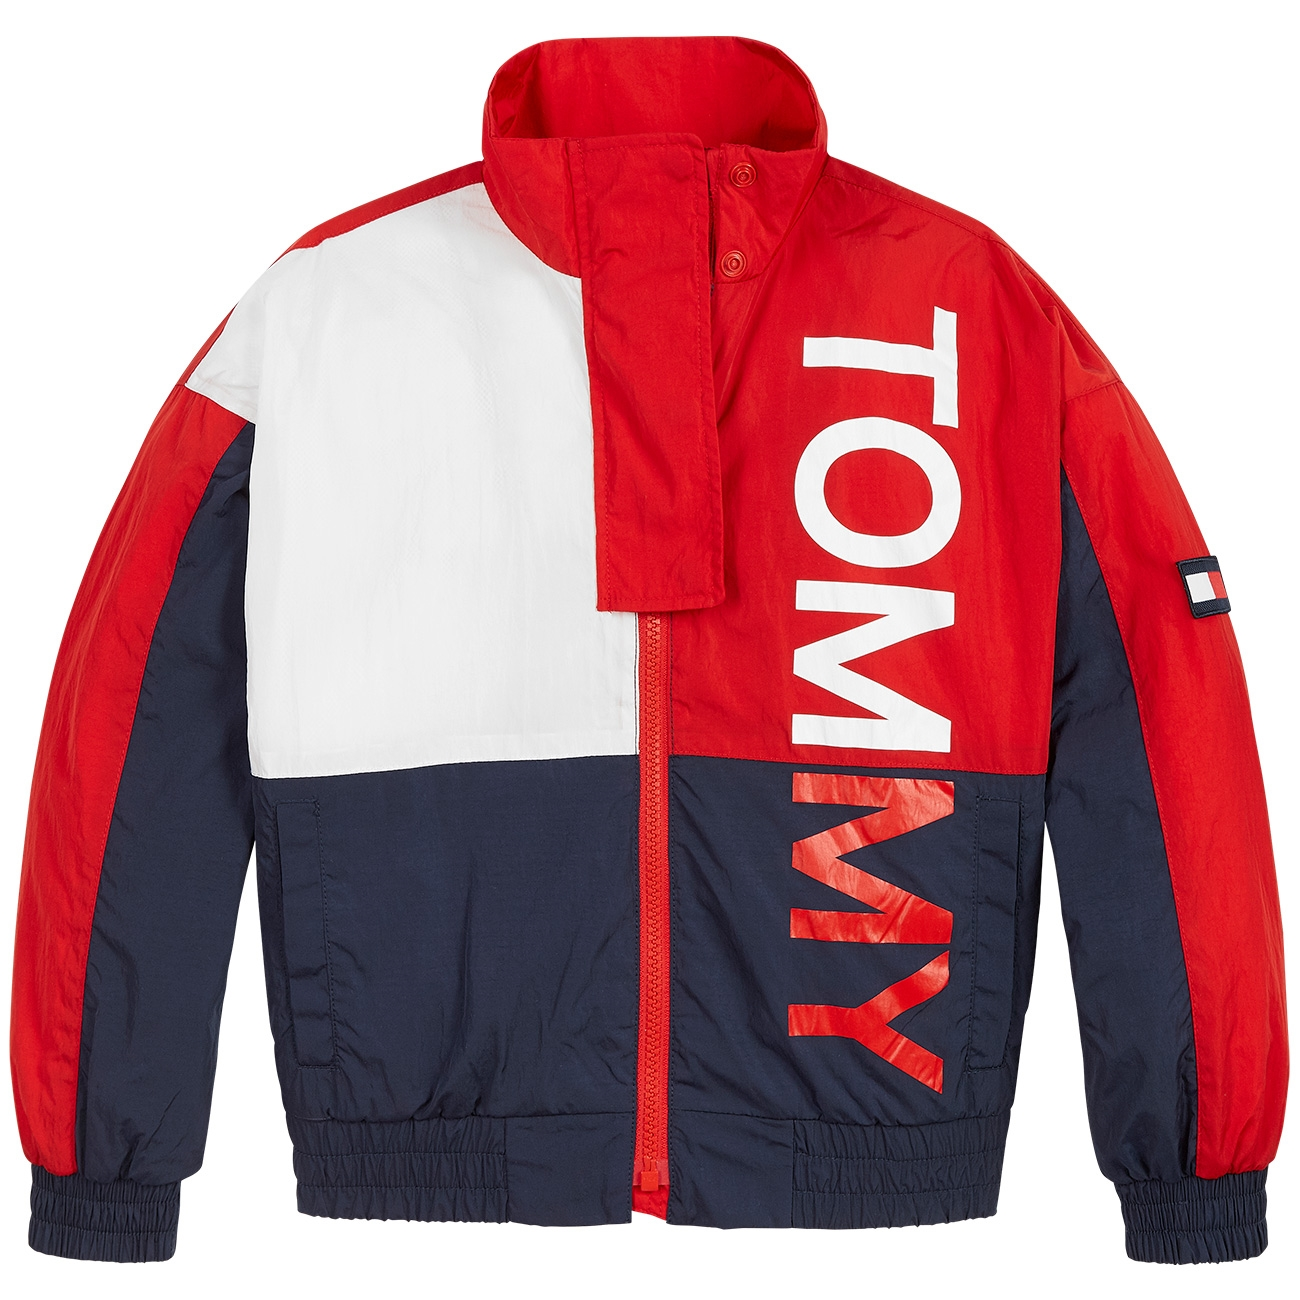 tommy-hilfiger-jacket-jakke-colorblock-navy-red-white-1